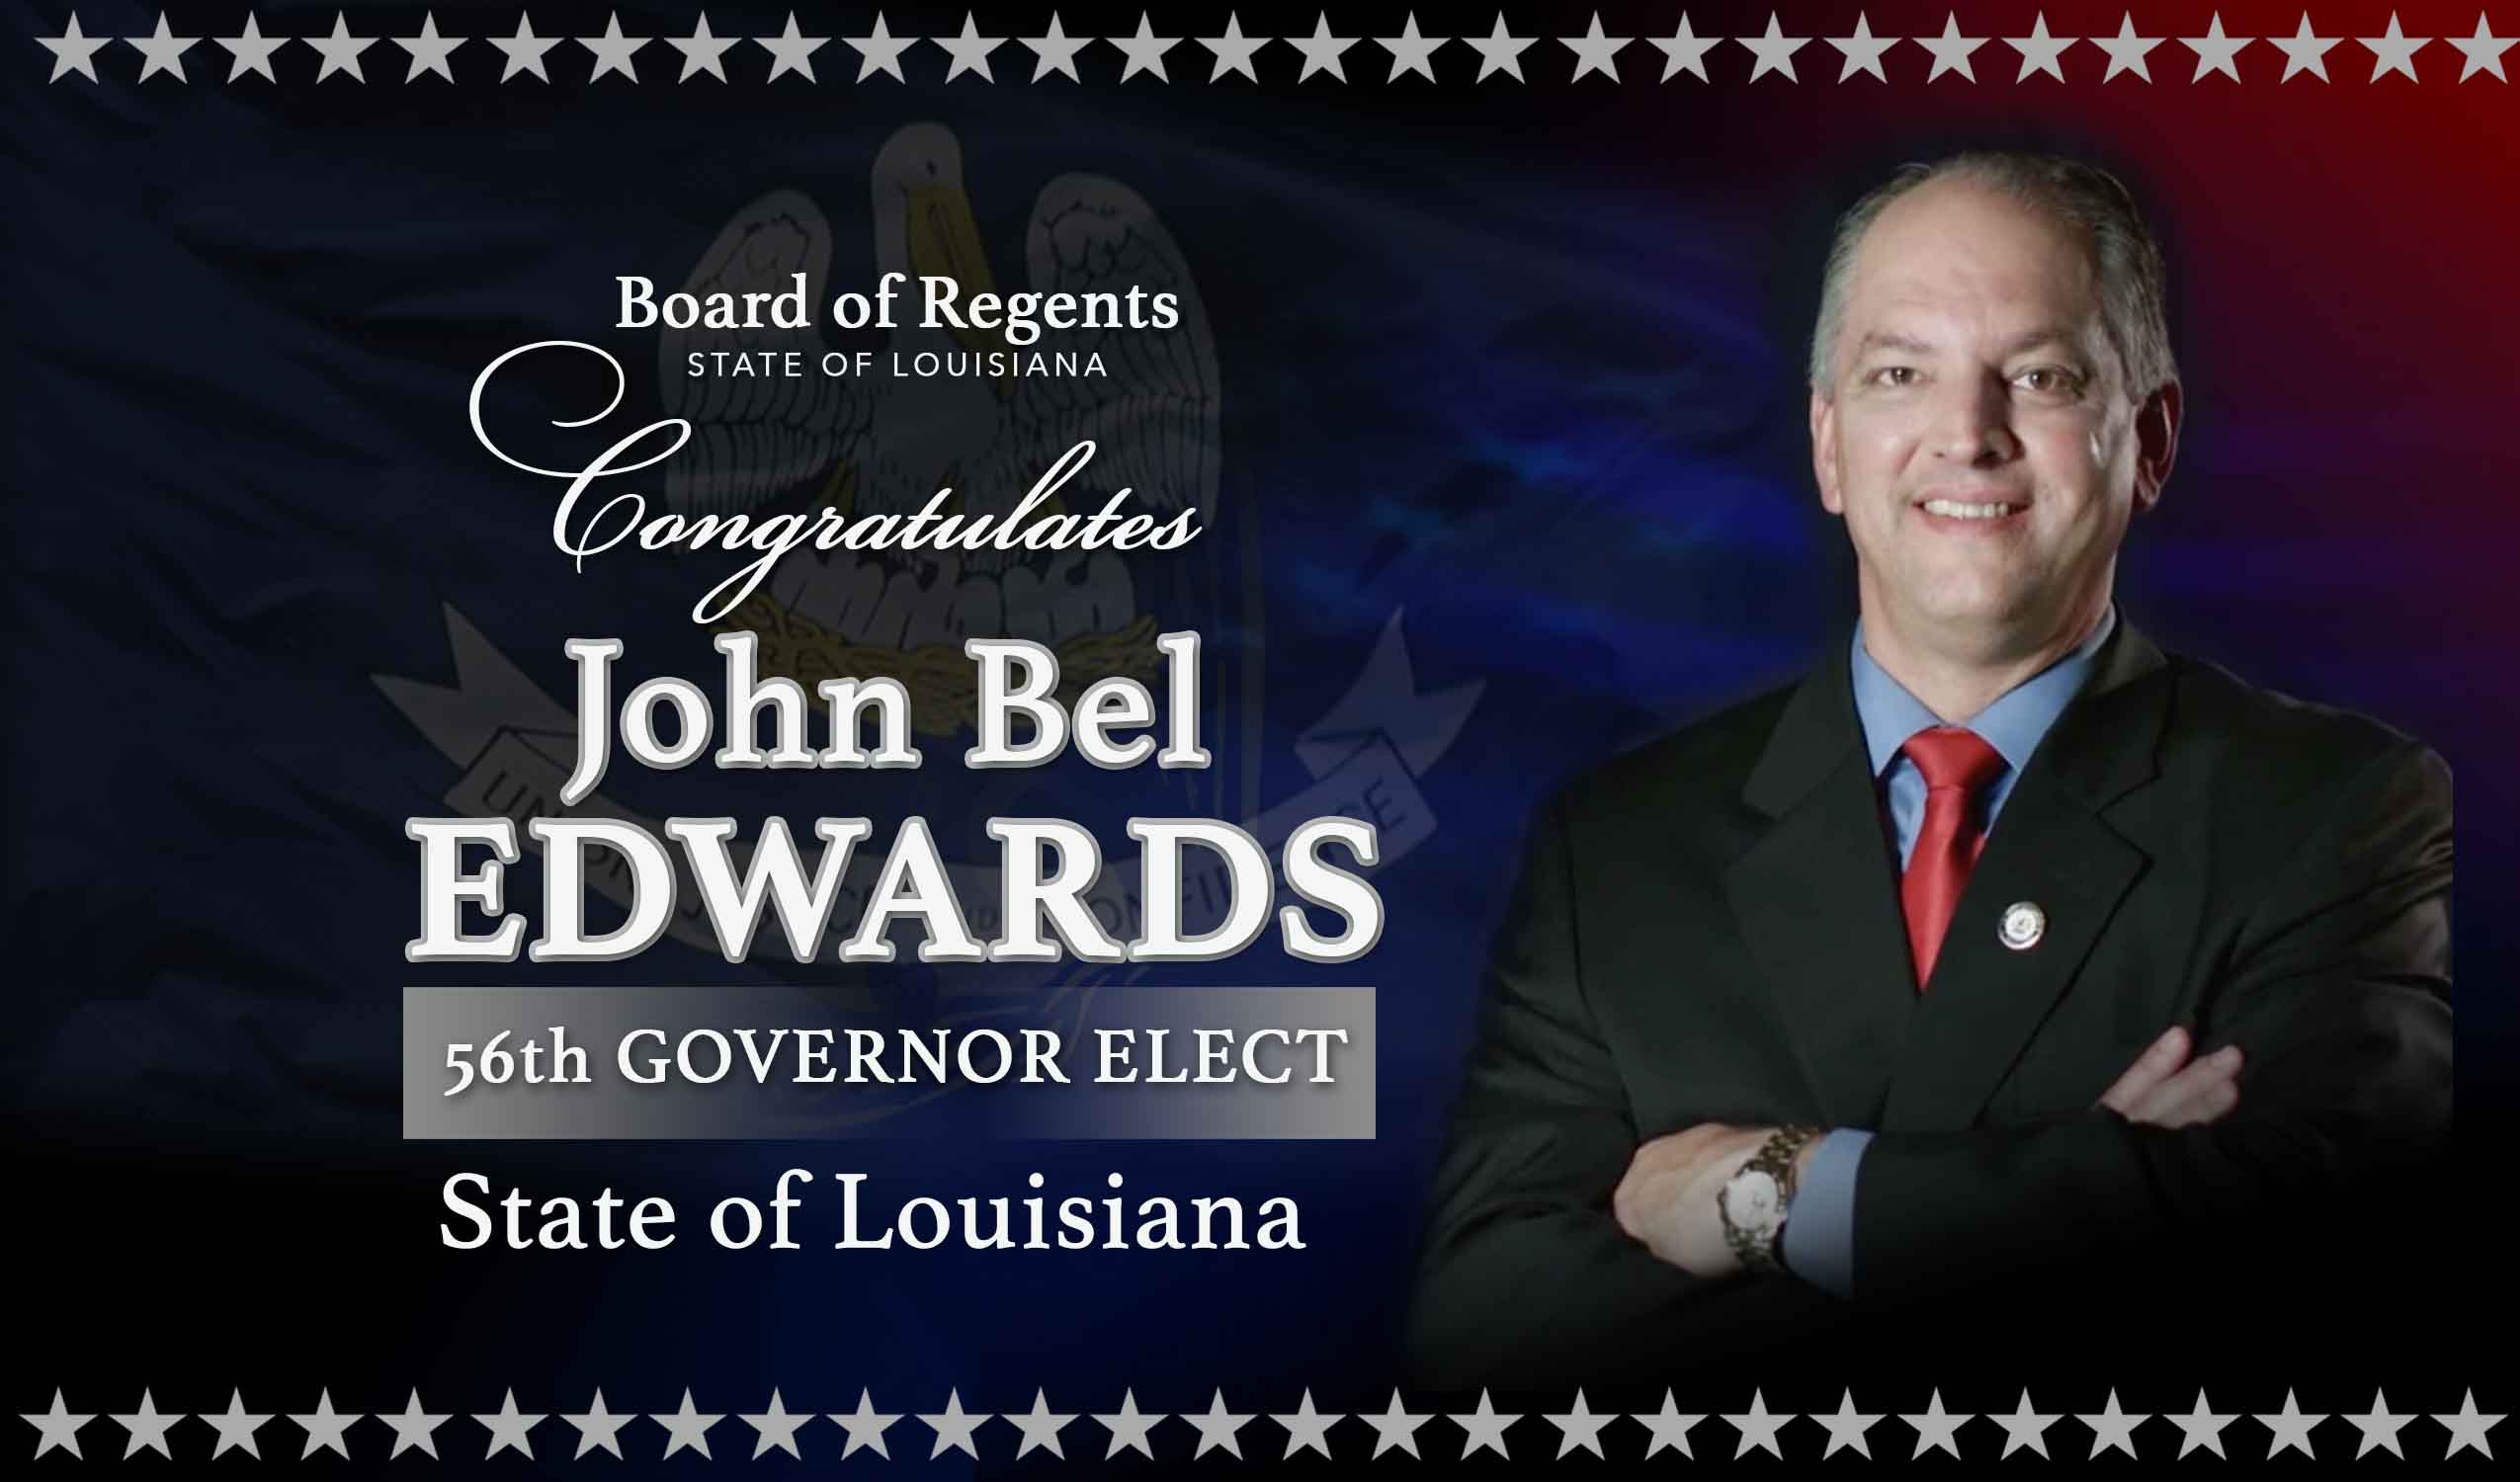 John Bel Edwards Governor Elect